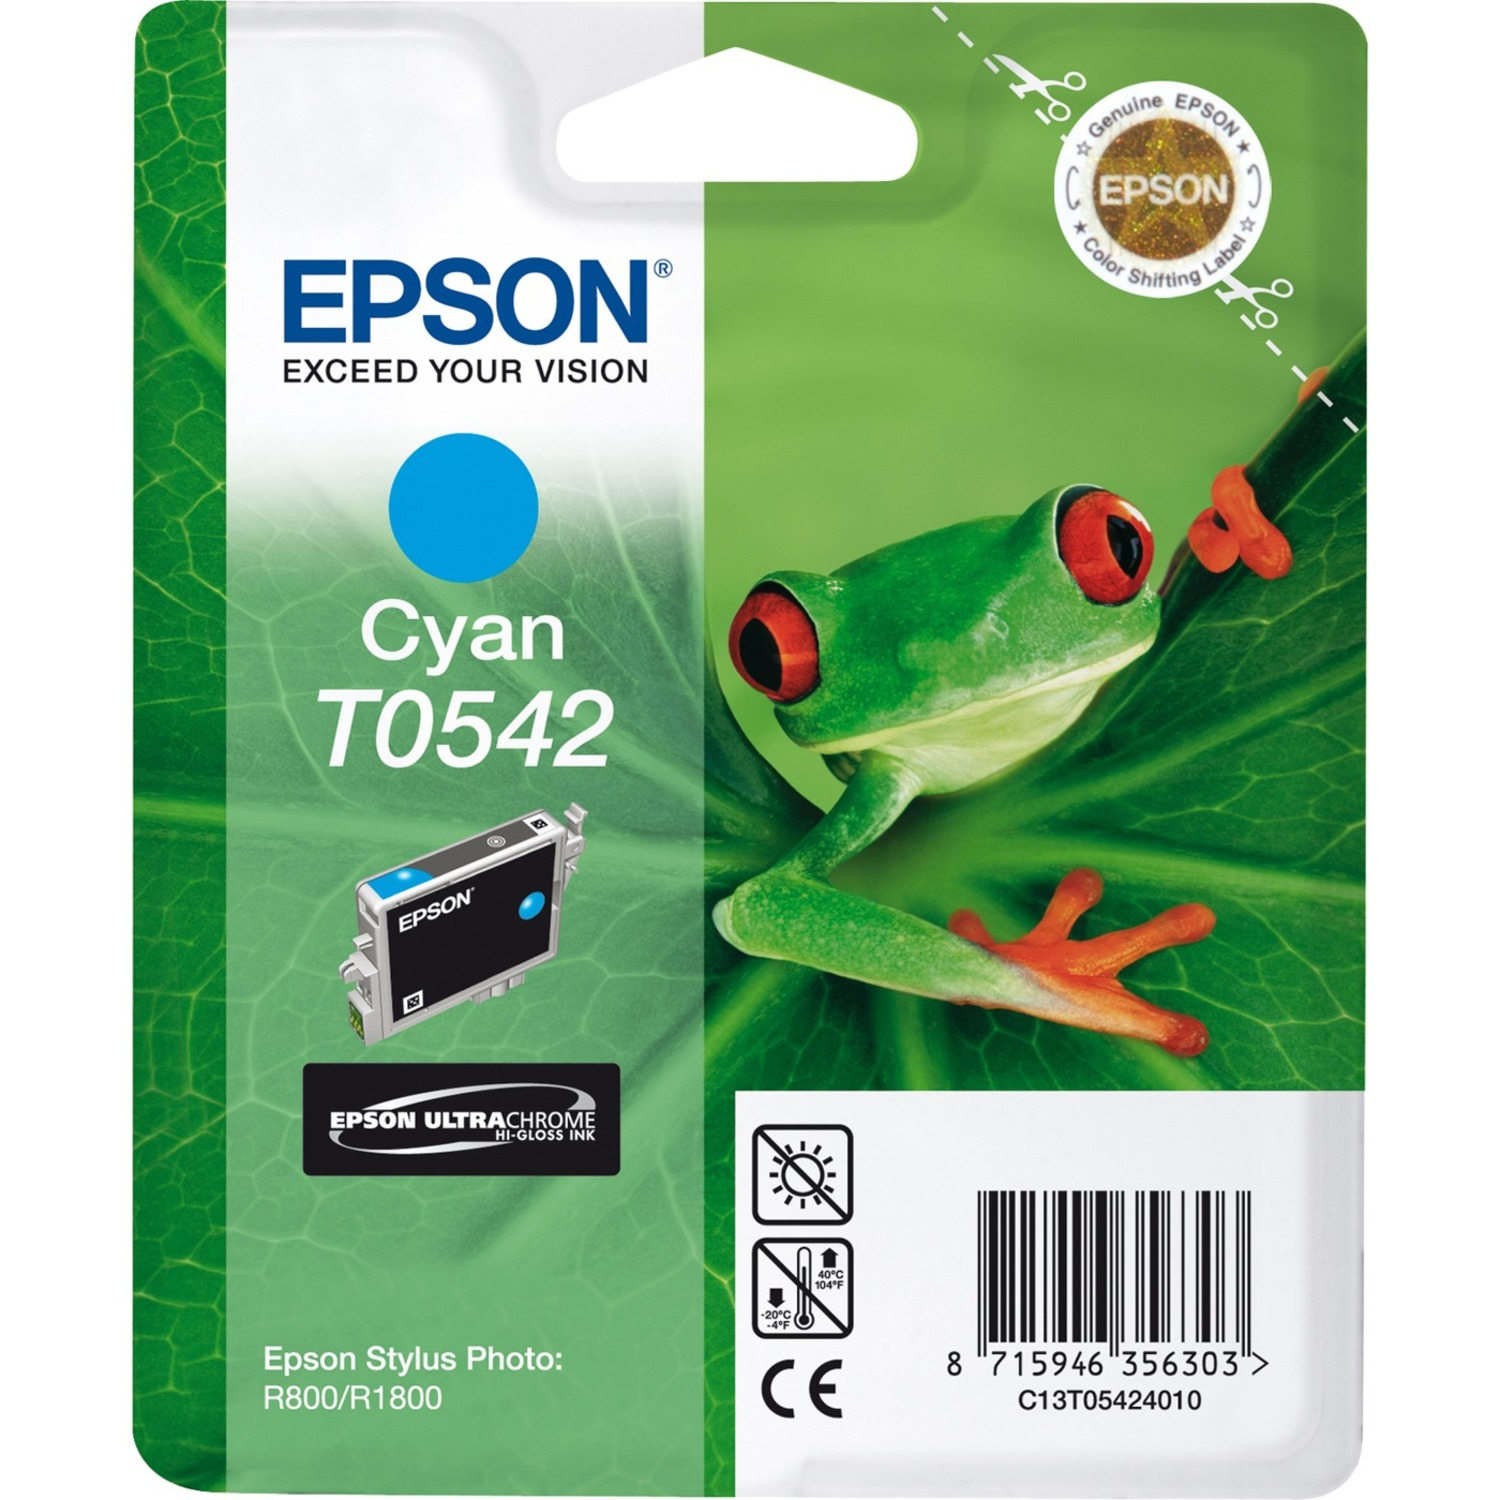 Epson UltraChrome T0542 Ink Cartridge - Cyan